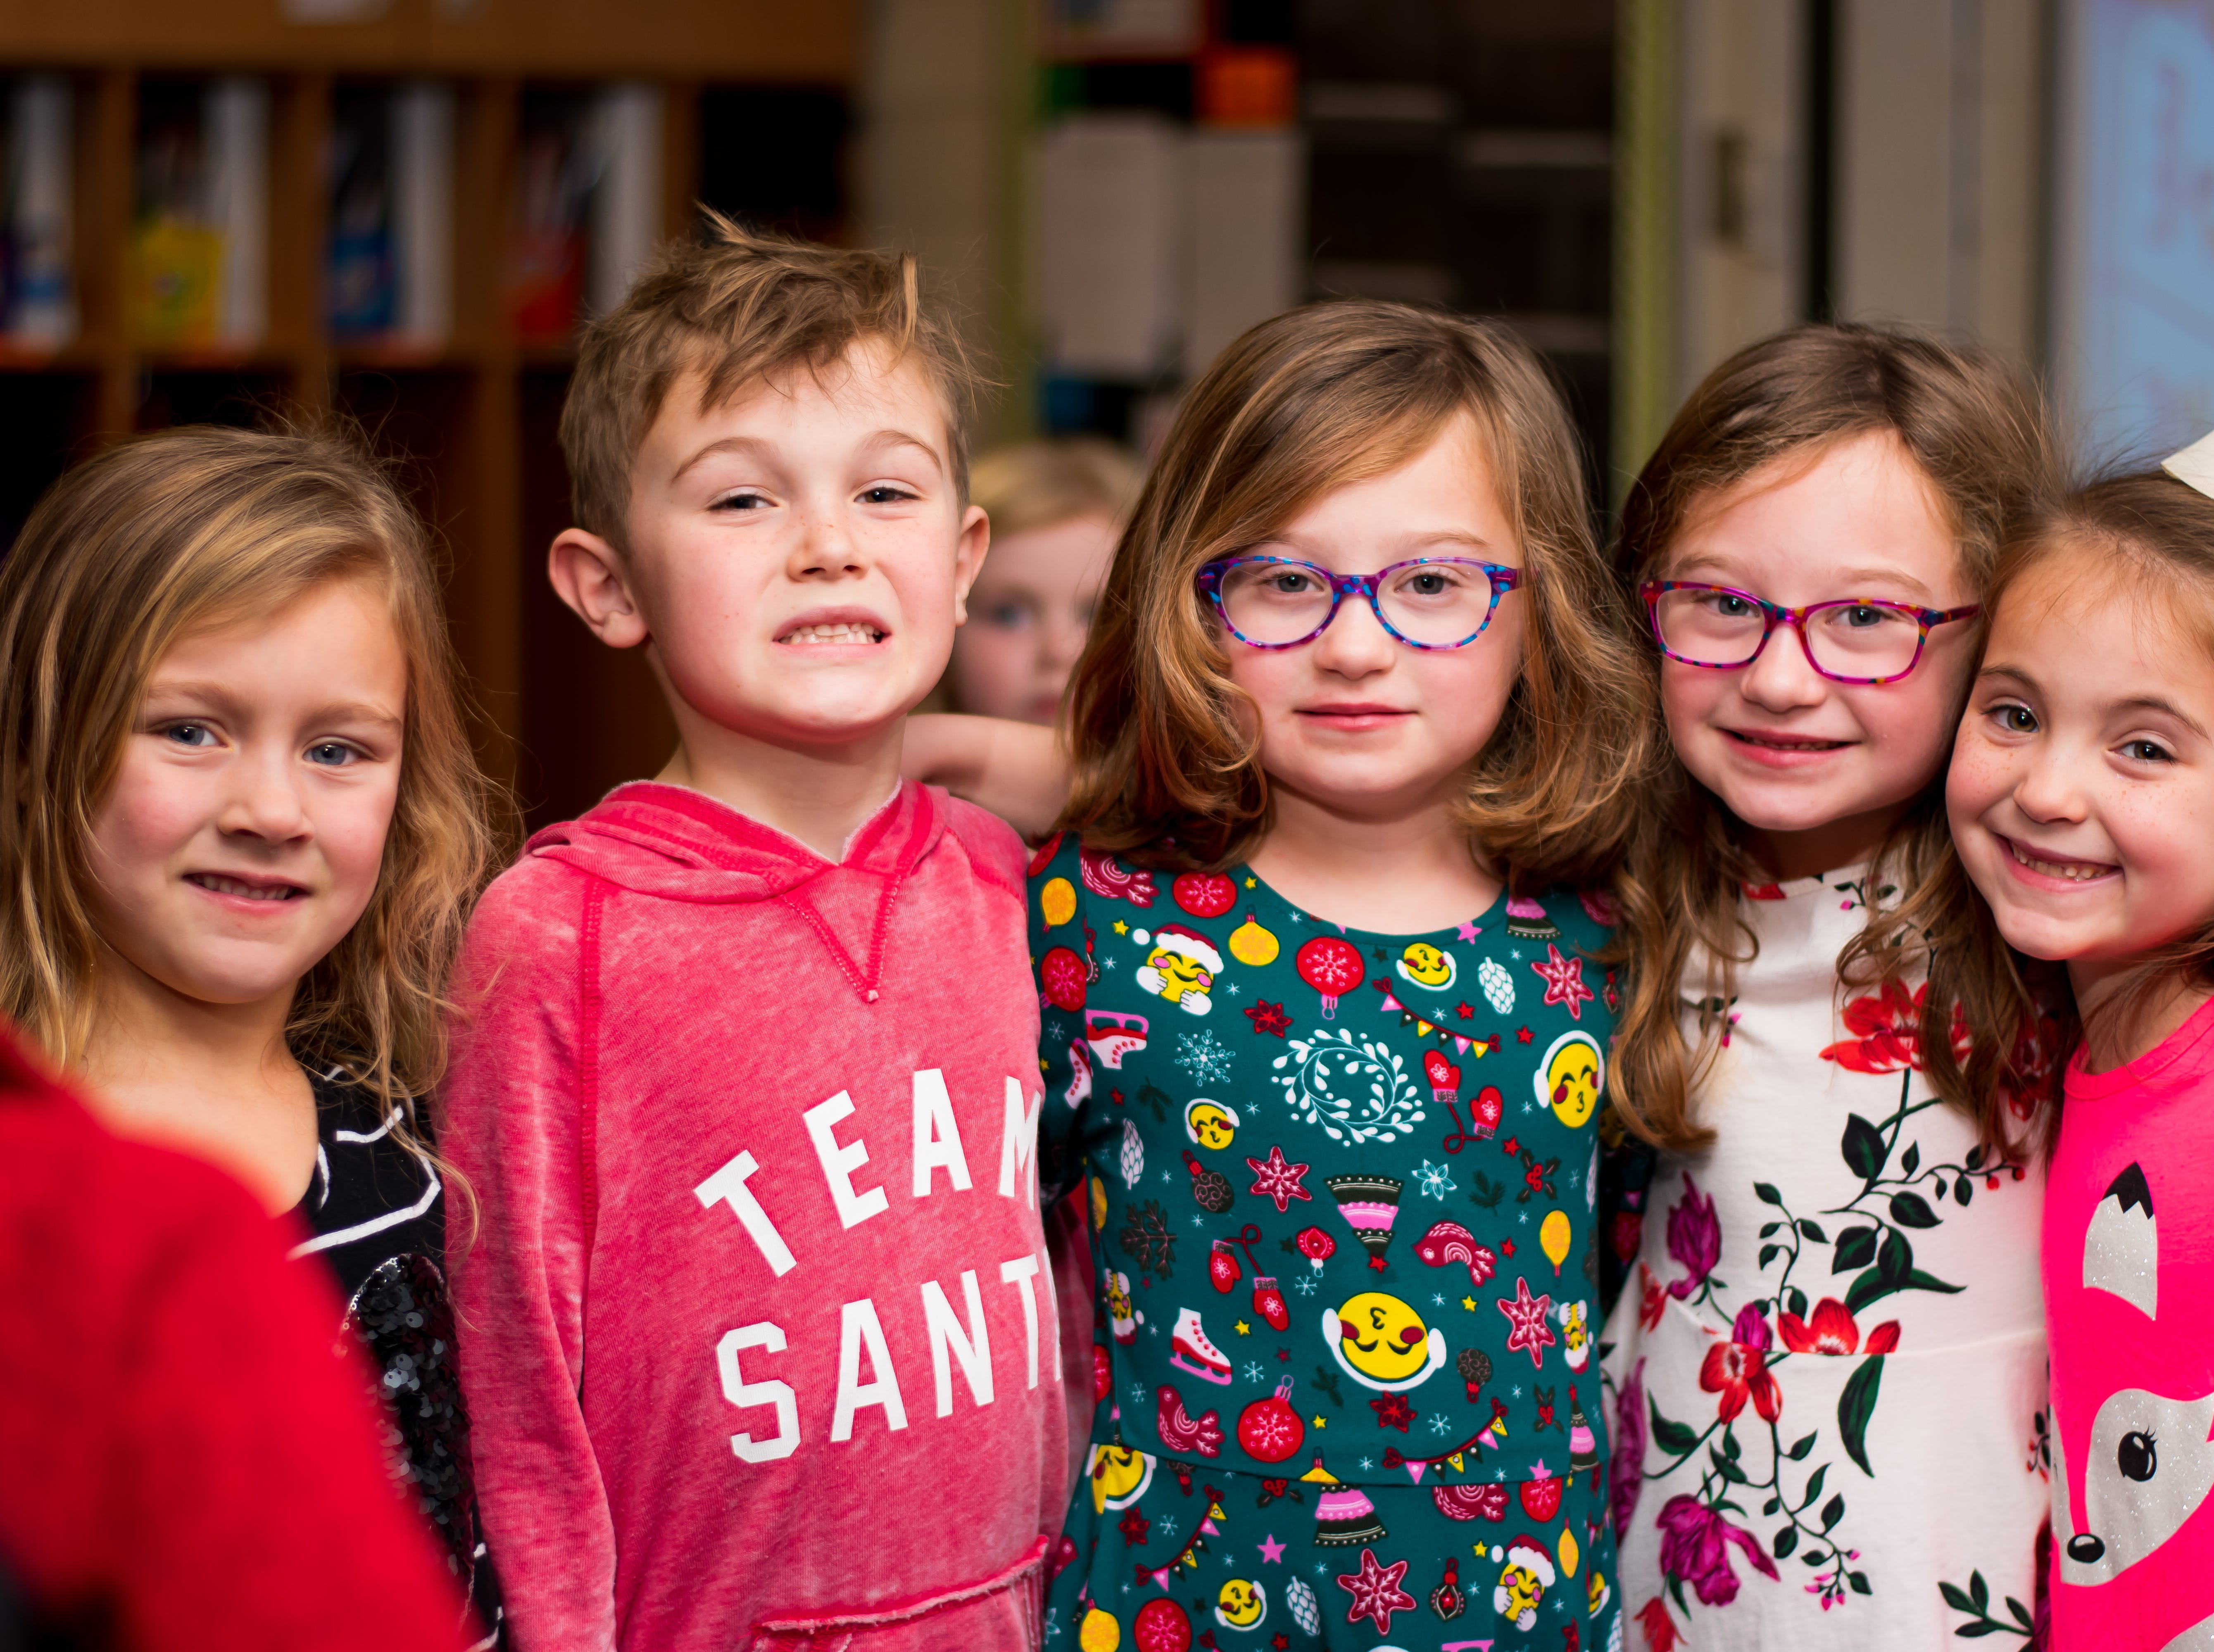 Ivy Fox, 6, Brexton Ross, 6, Evelyn Olson, 6, Allison Olson, 6, and Izabella Bieghler, 6, all of Urbandale enjoy a snack and a Christmas movie on Friday, Dec. 21, 2018 at Karen Acres Elementary School in Urbandale for their winter party.